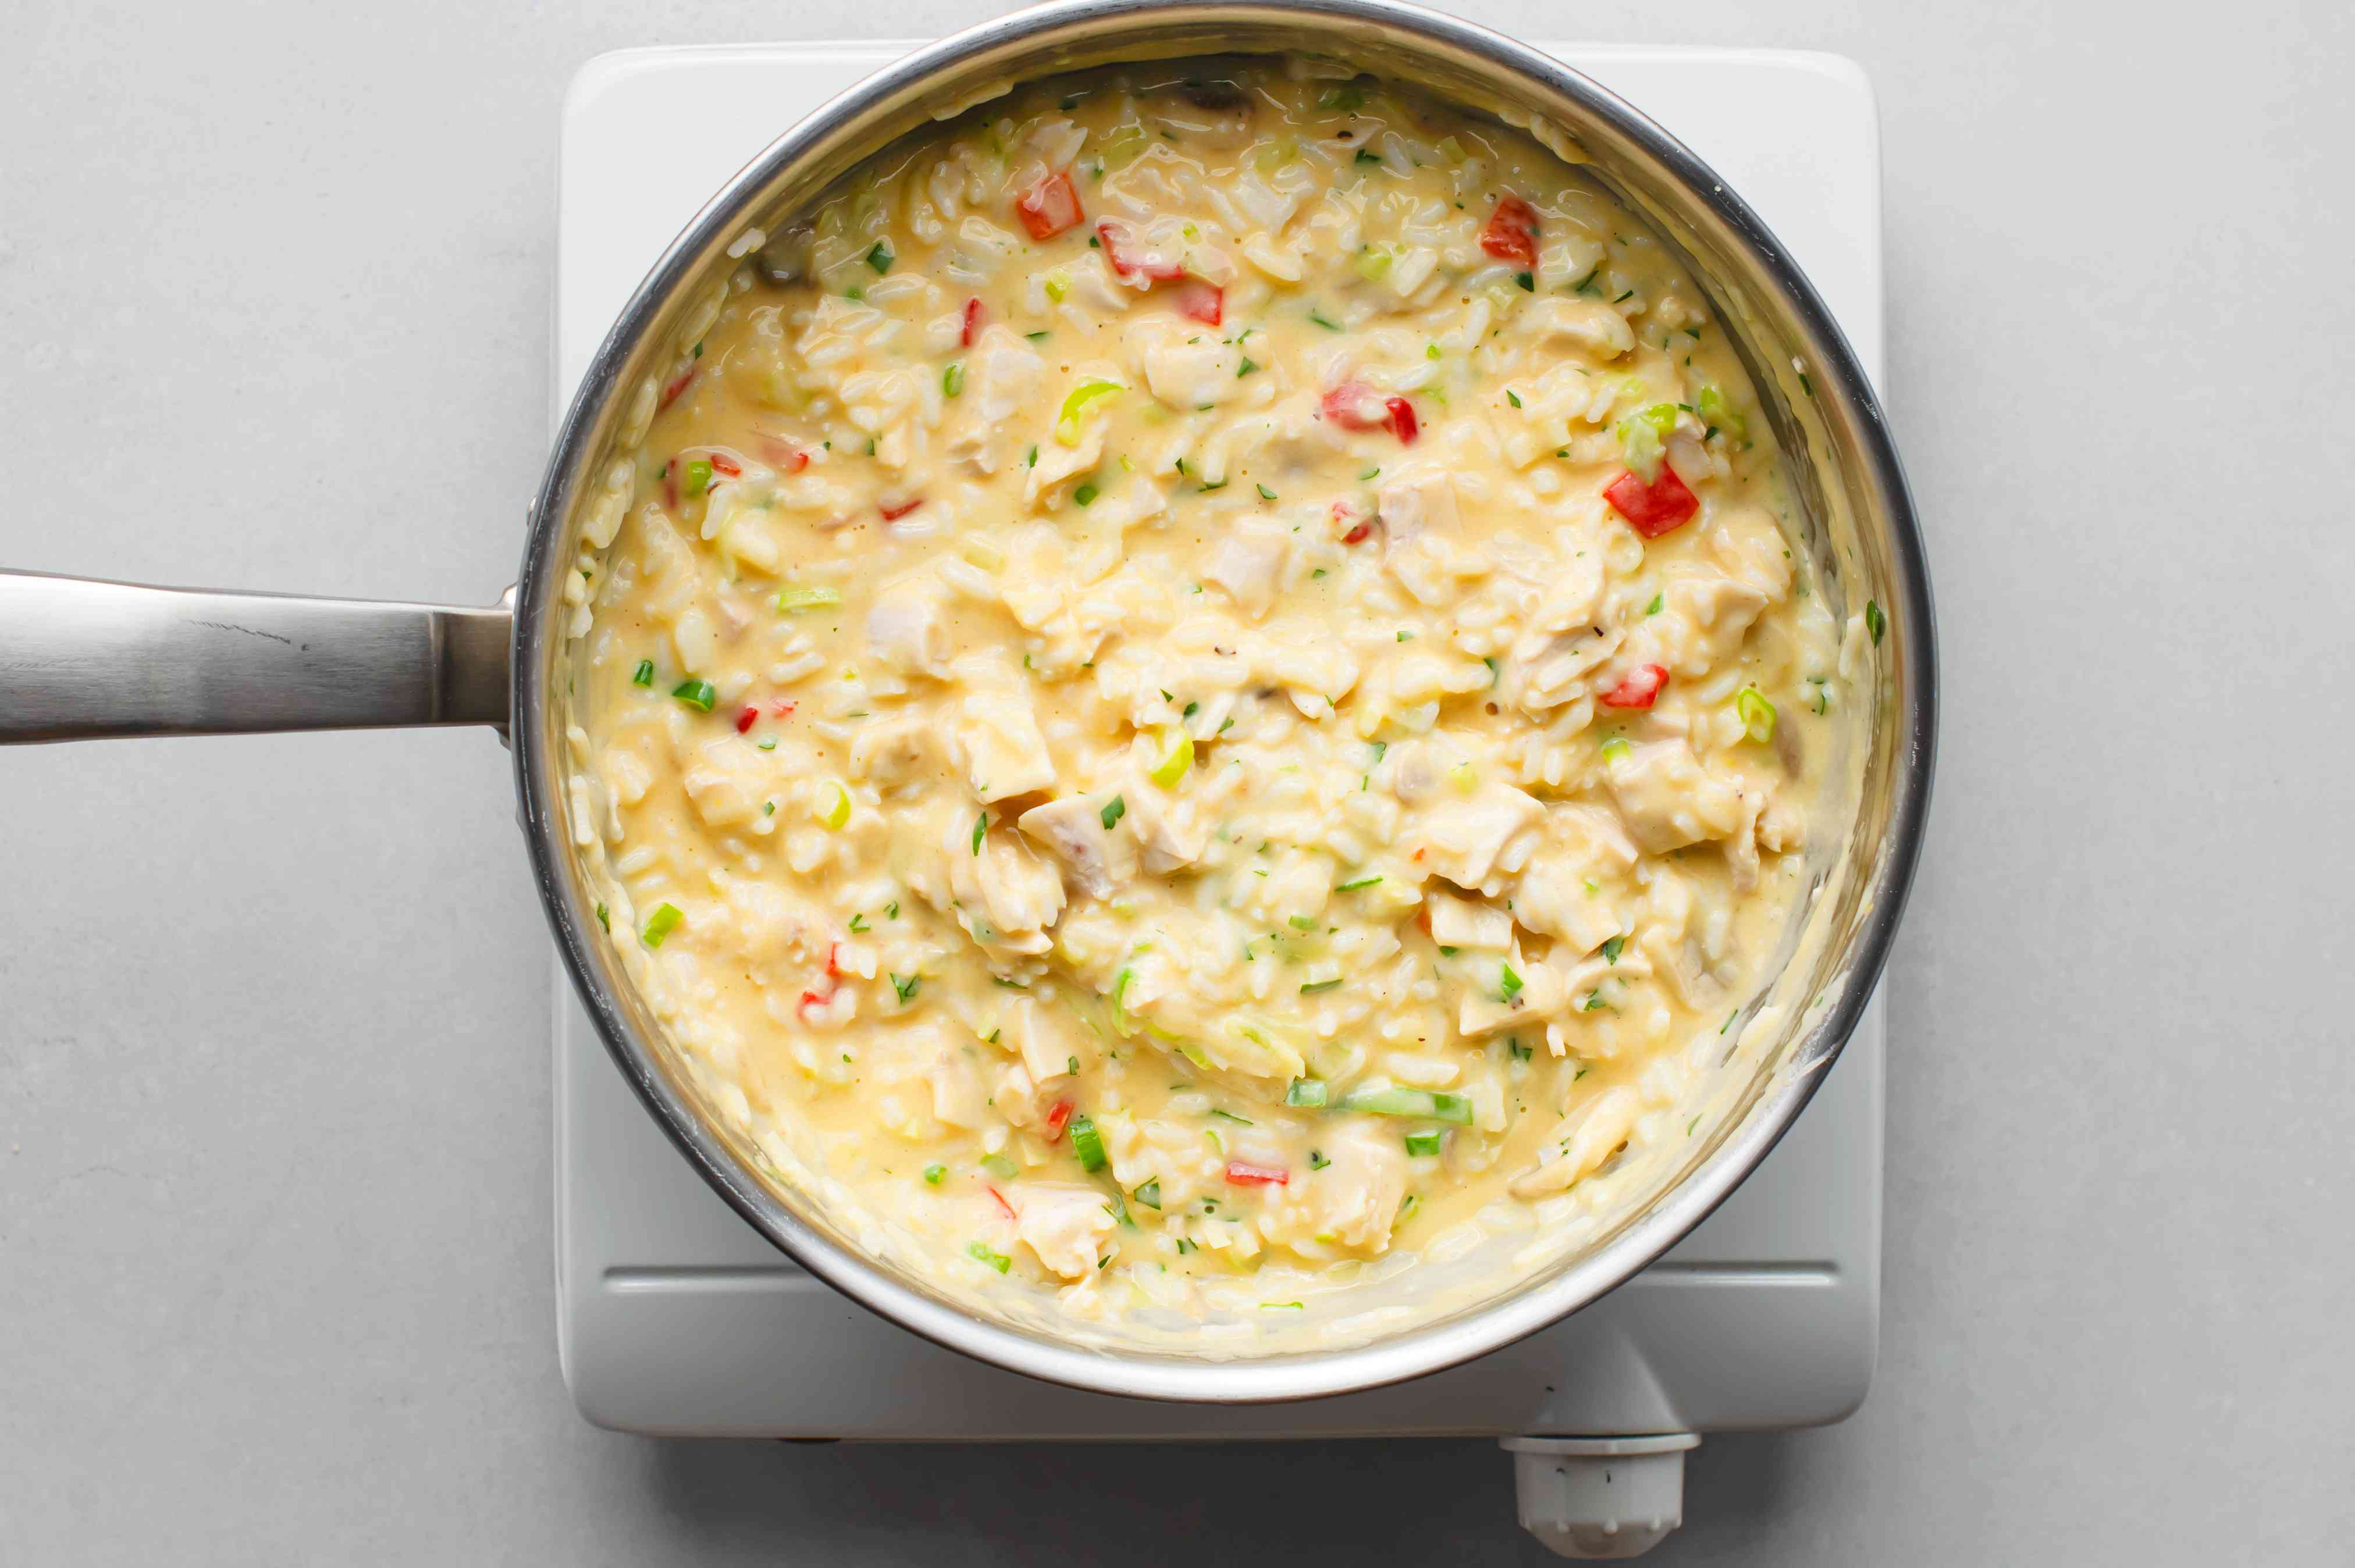 rice, chicken, and parsley added to the cheese sauce